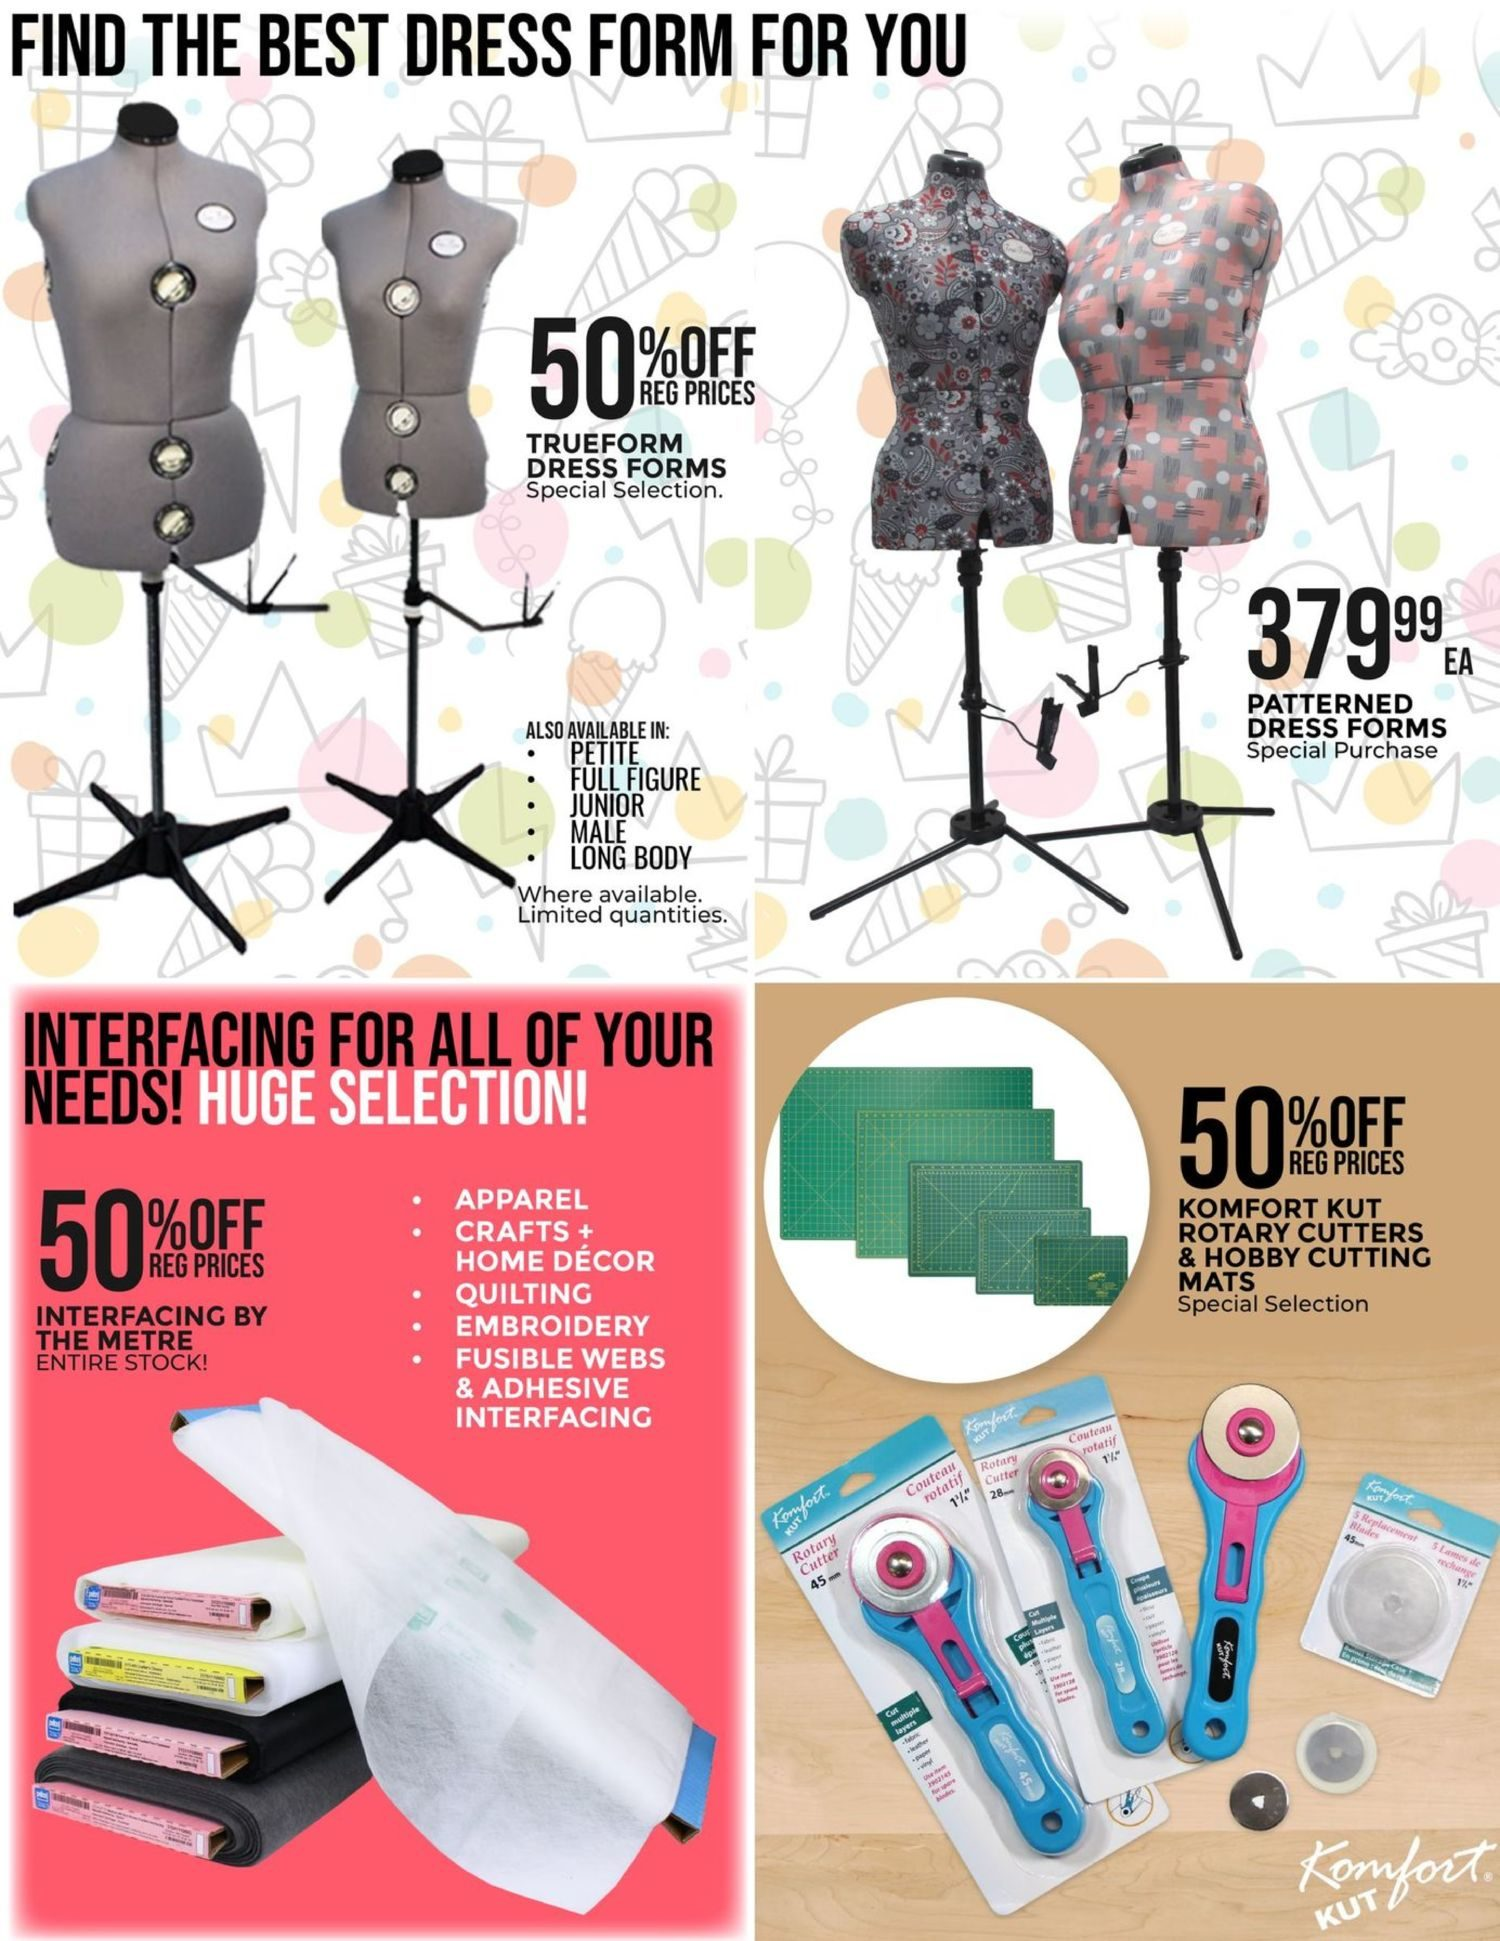 Fabricland - Monthly Offers - 53rd Birthday Sale - Page 19